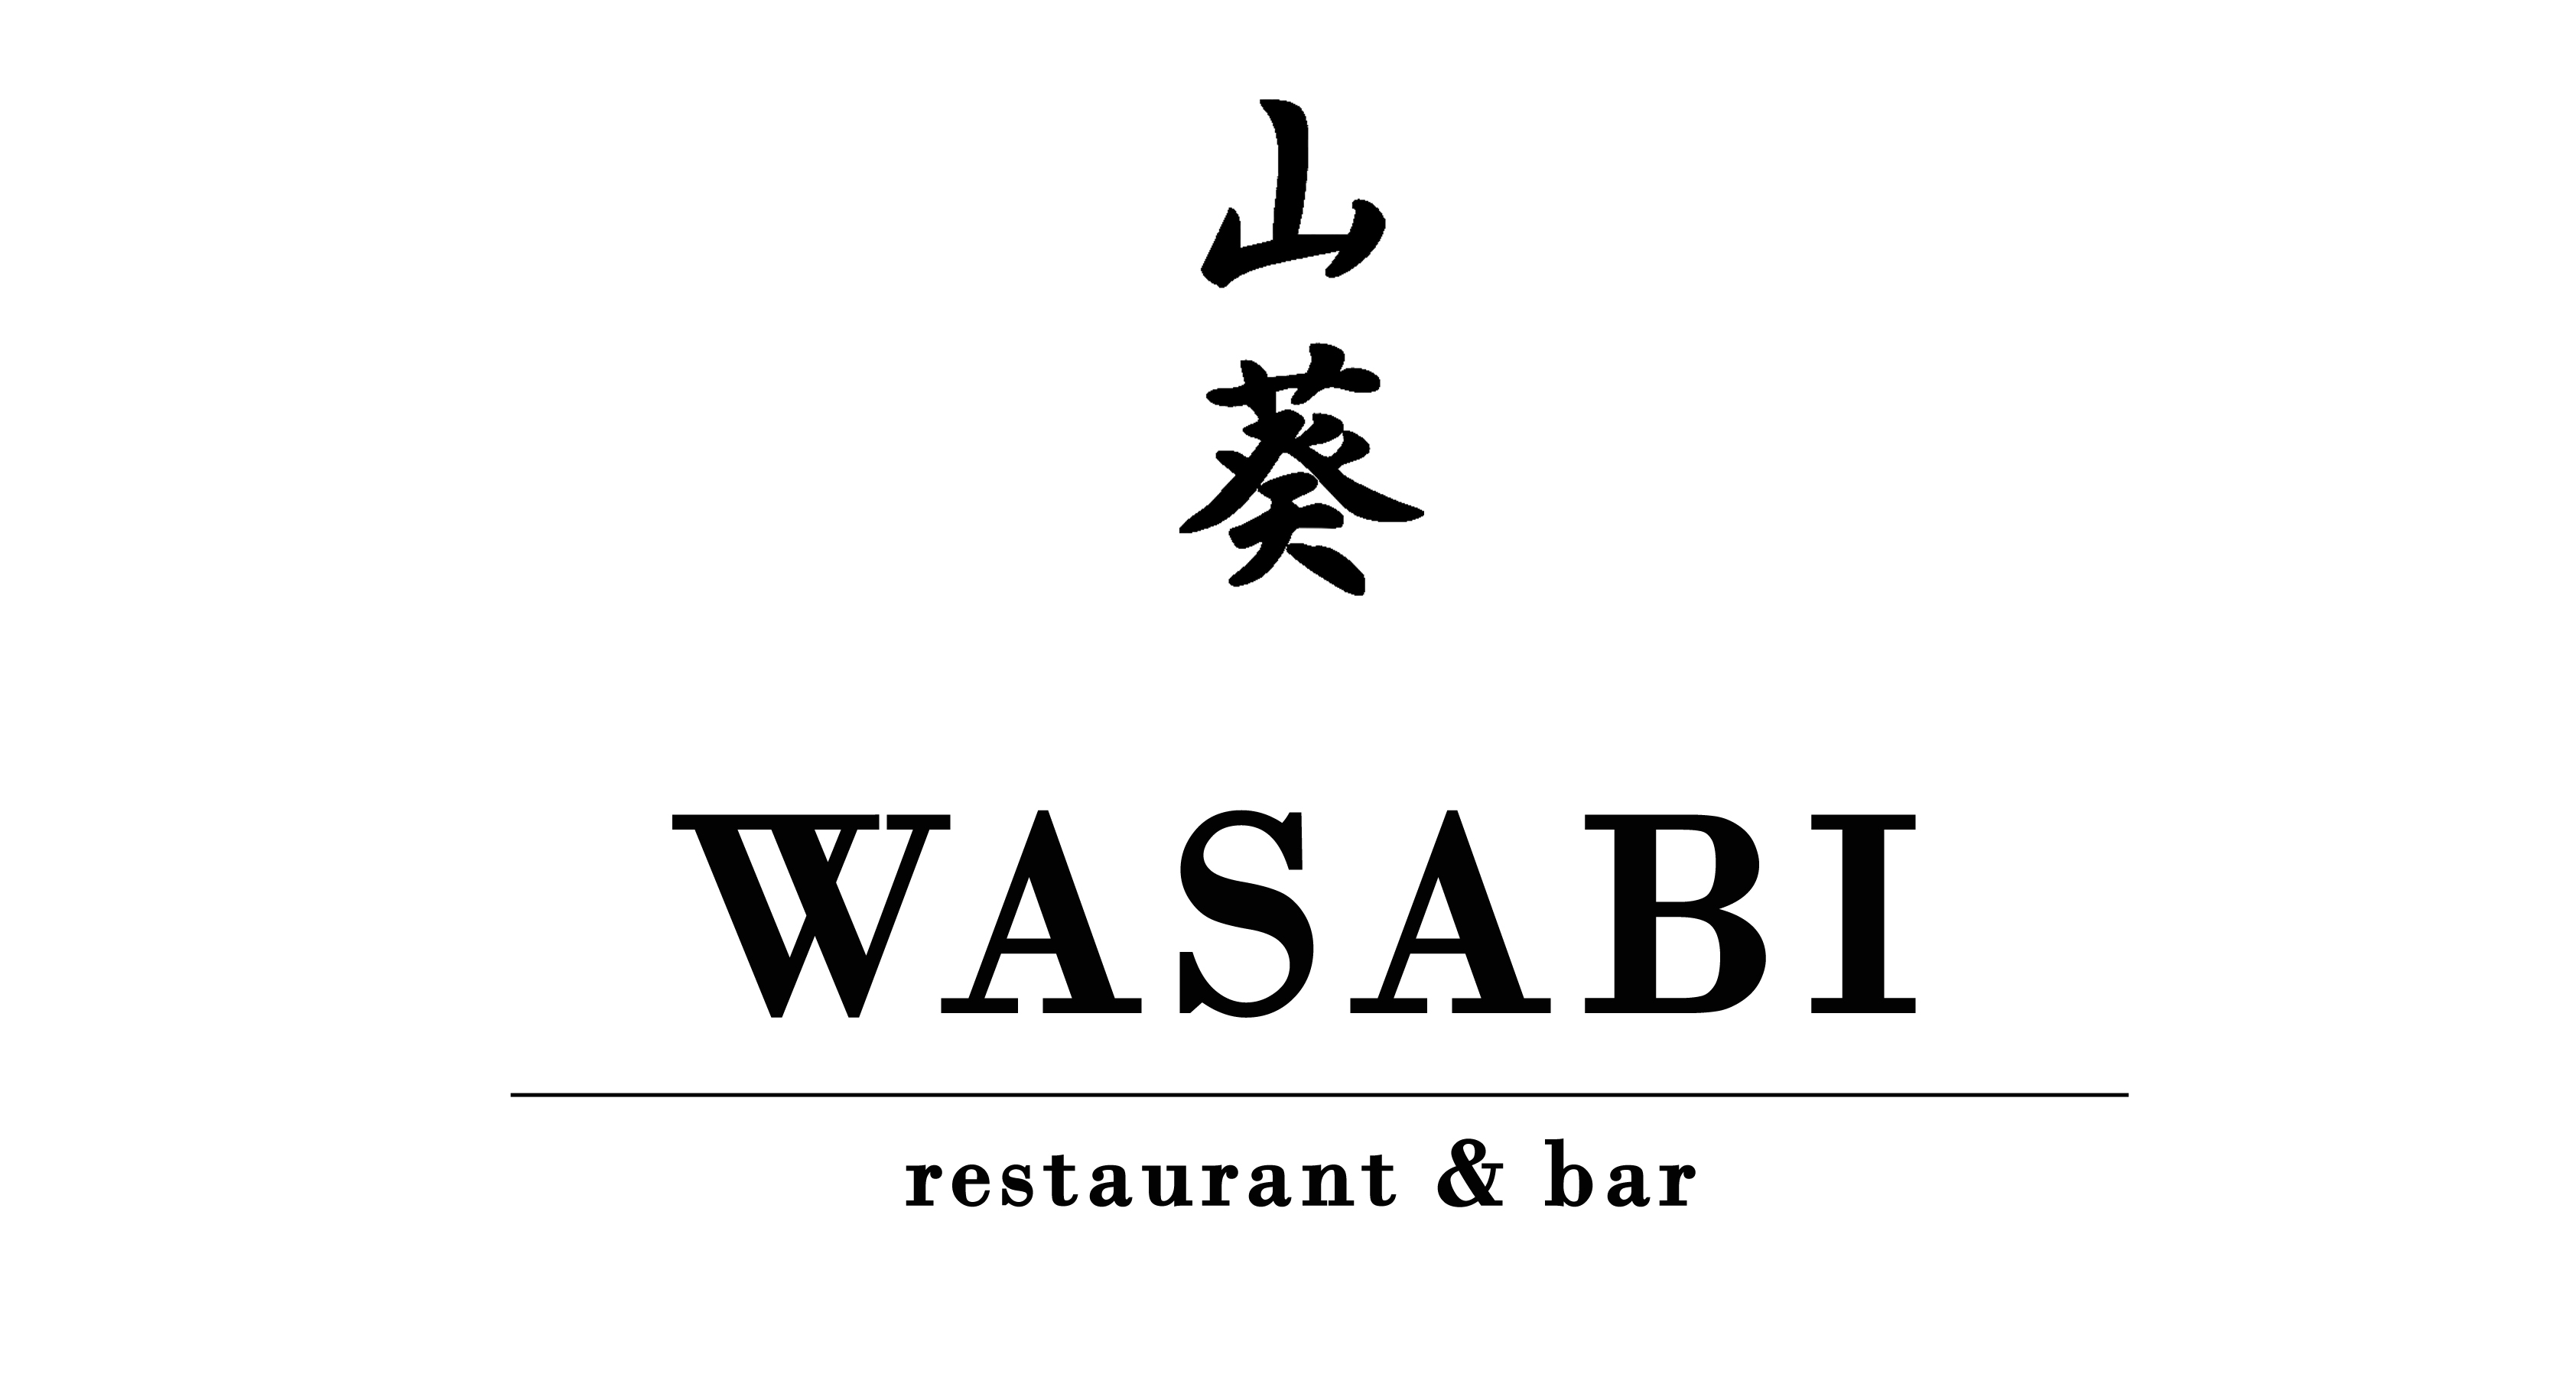 Wasabi Restaurant & Bar - Noosa